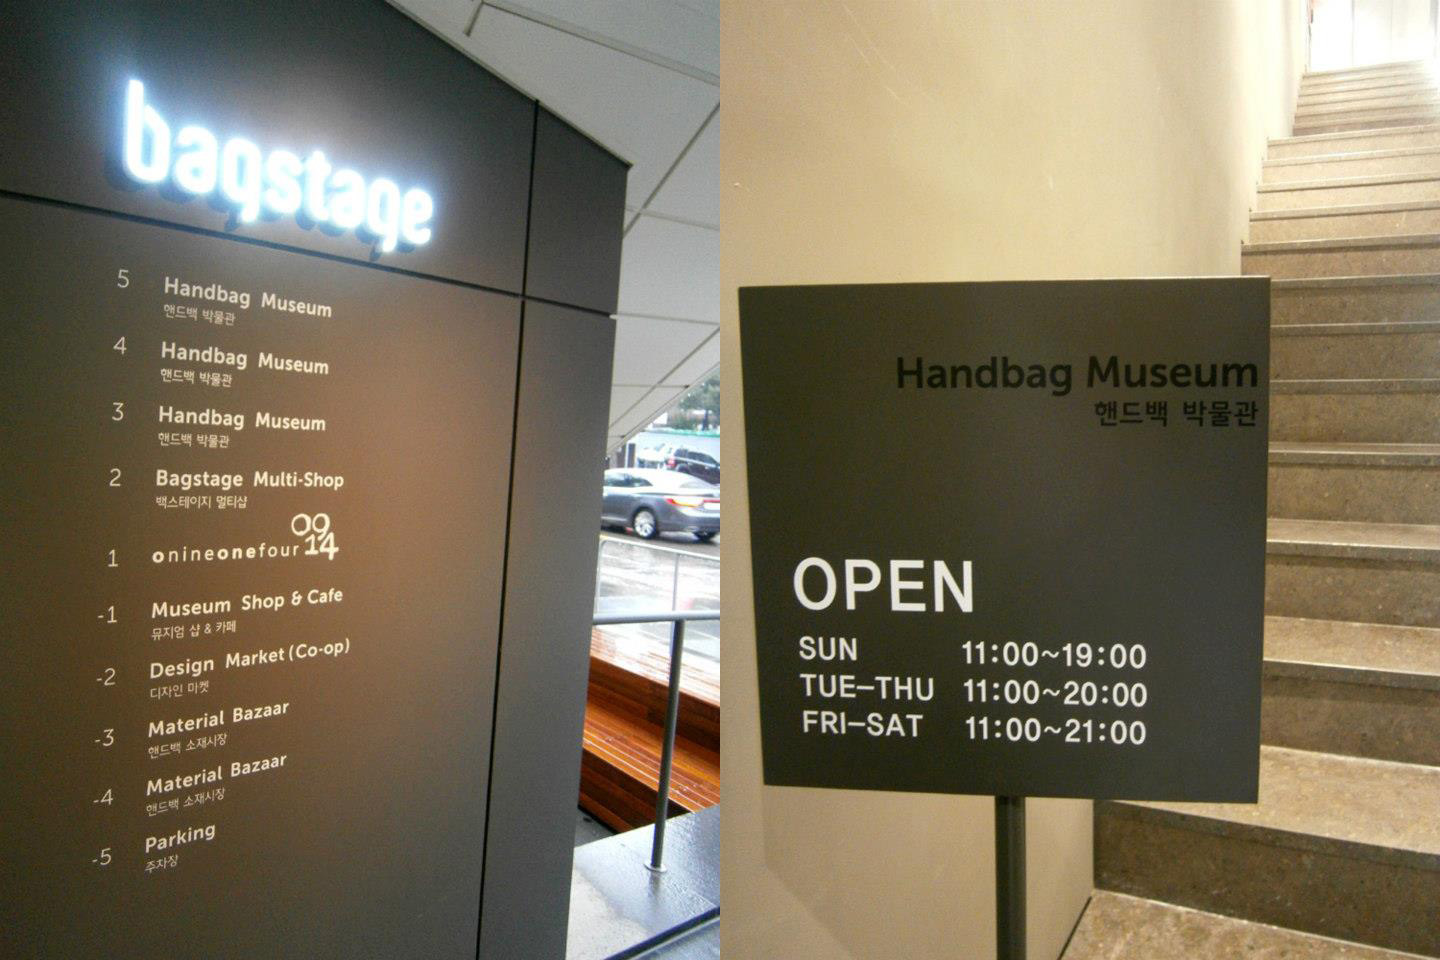 Building directory of Bagstage and the museum's operating hours - Simone Handbag Museum, Gangnam-gu, Seoul, South Korea